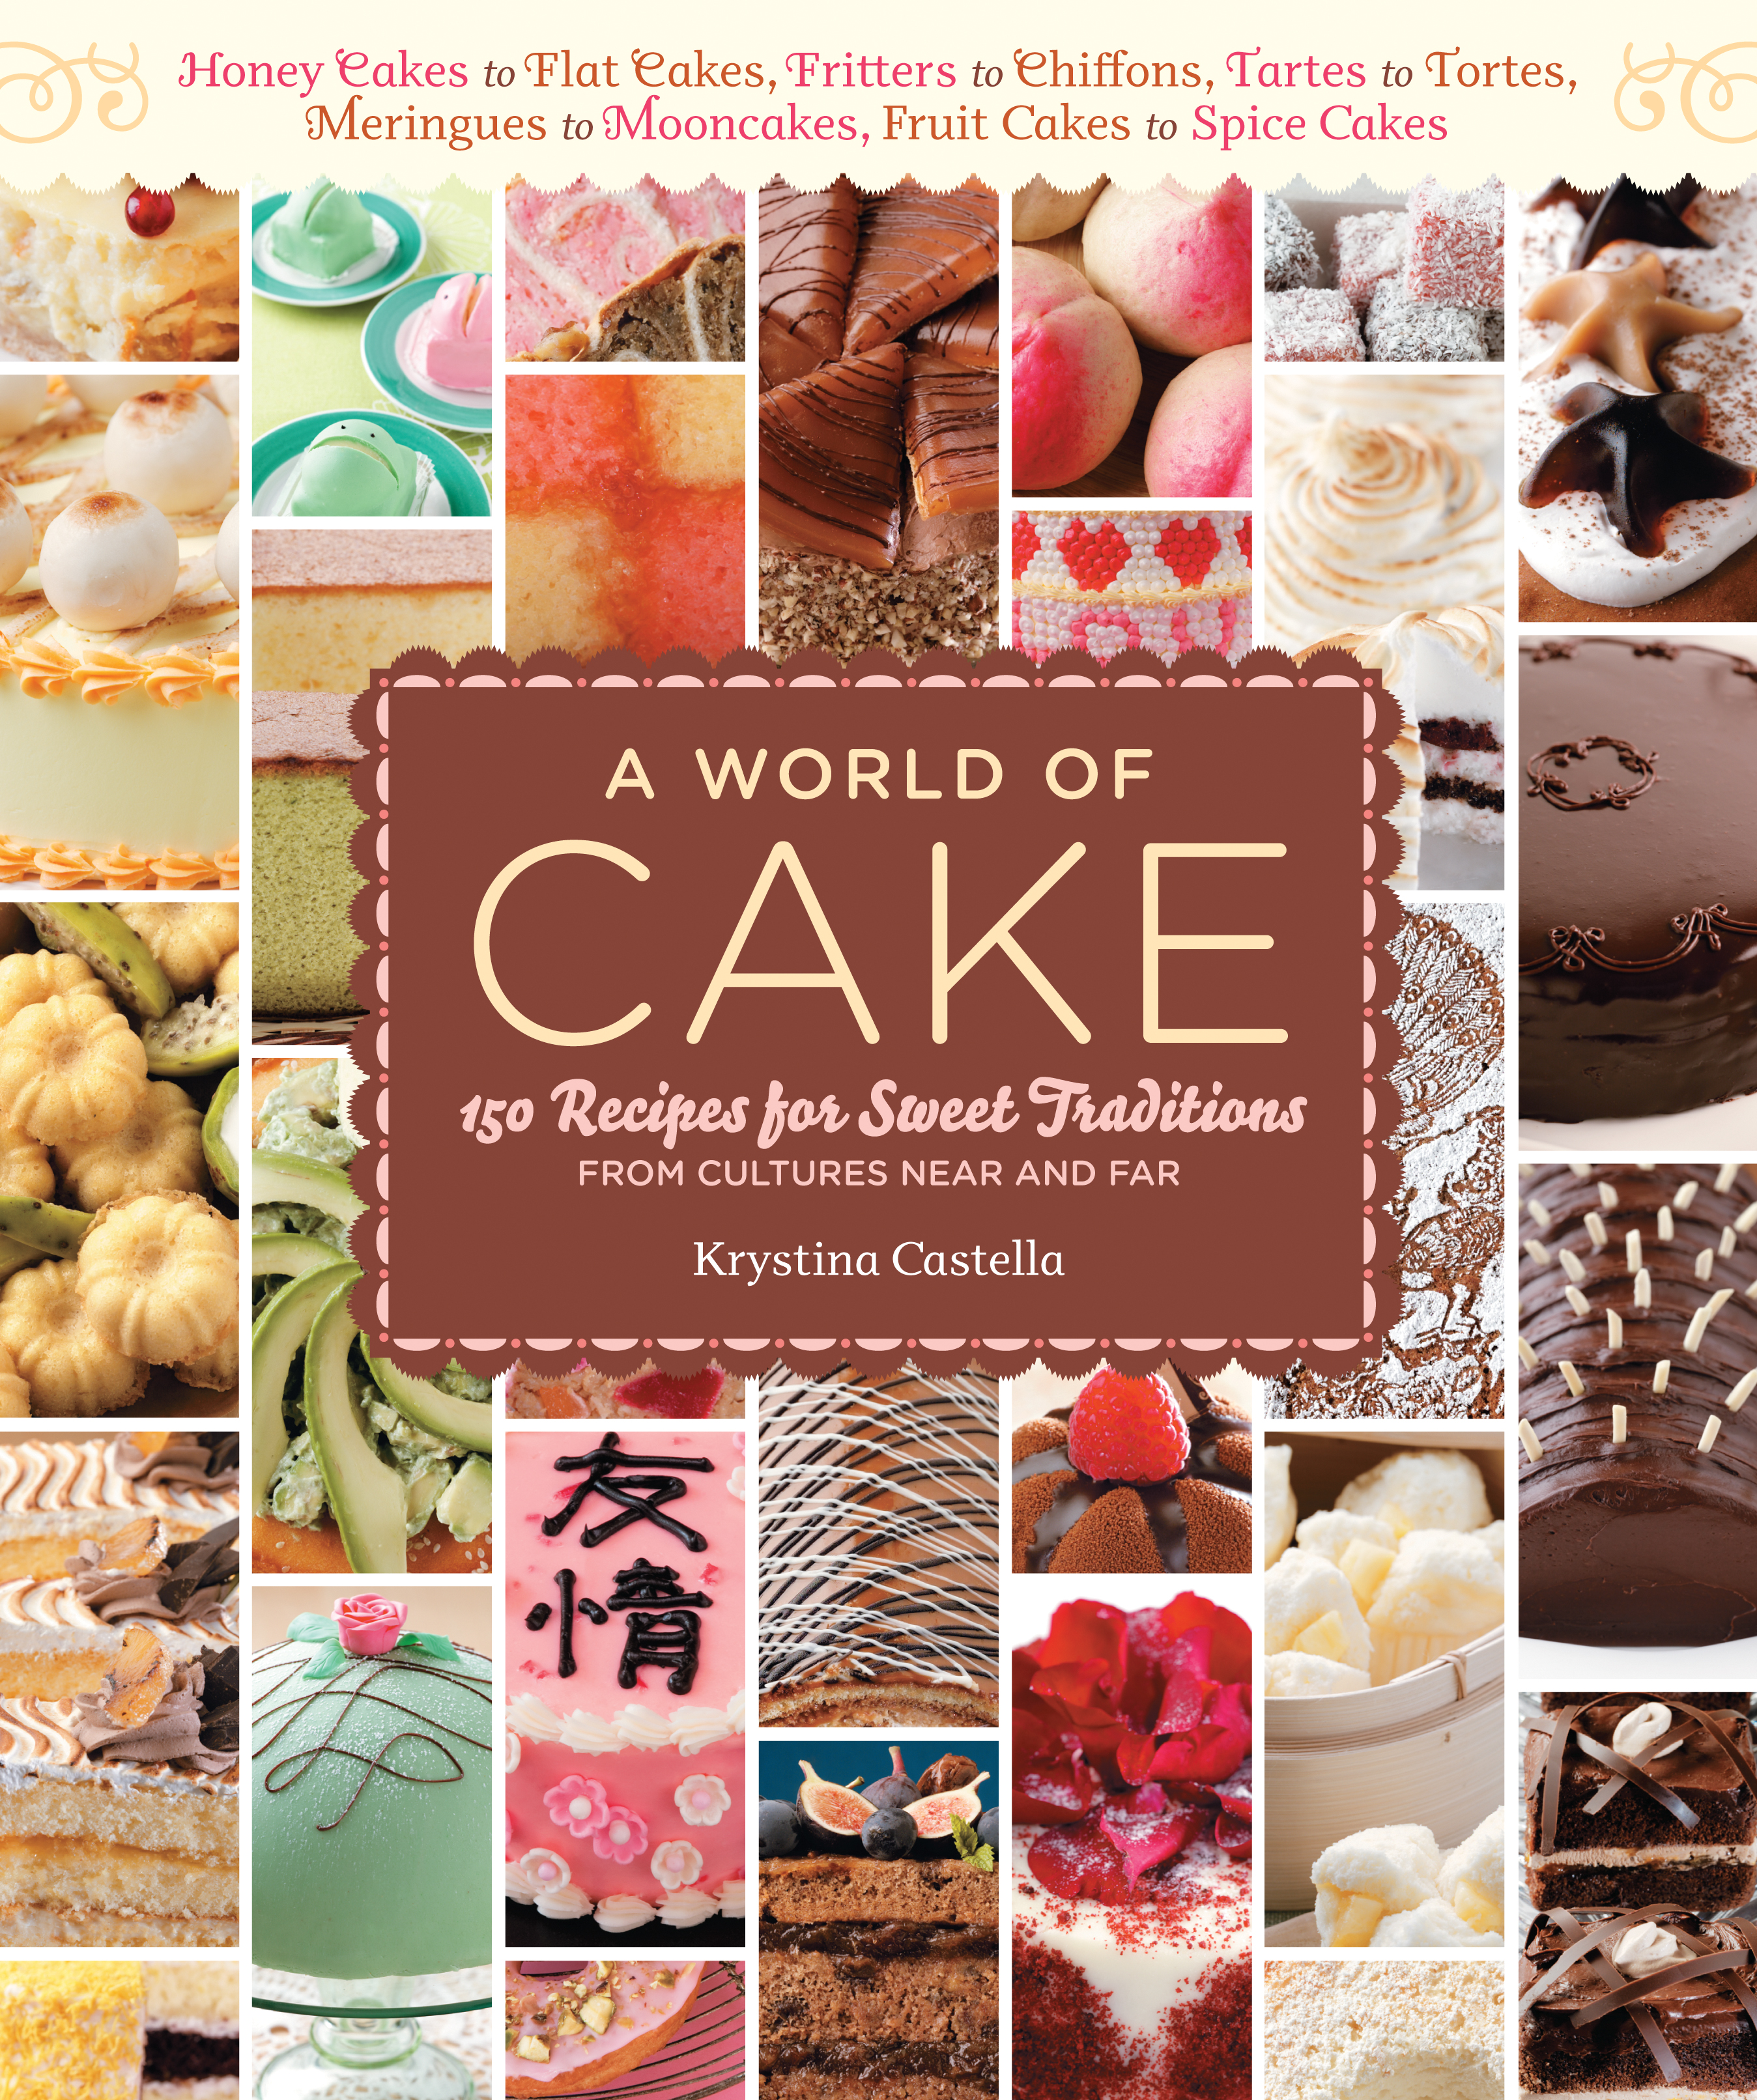 A World of Cake 150 Recipes for Sweet Traditions from Cultures Near and Far; Honey cakes to flat cakes, fritters to chiffons, tartes to tortes, meringues to mooncakes, fruit cakes to spice cakes - Krystina Castella